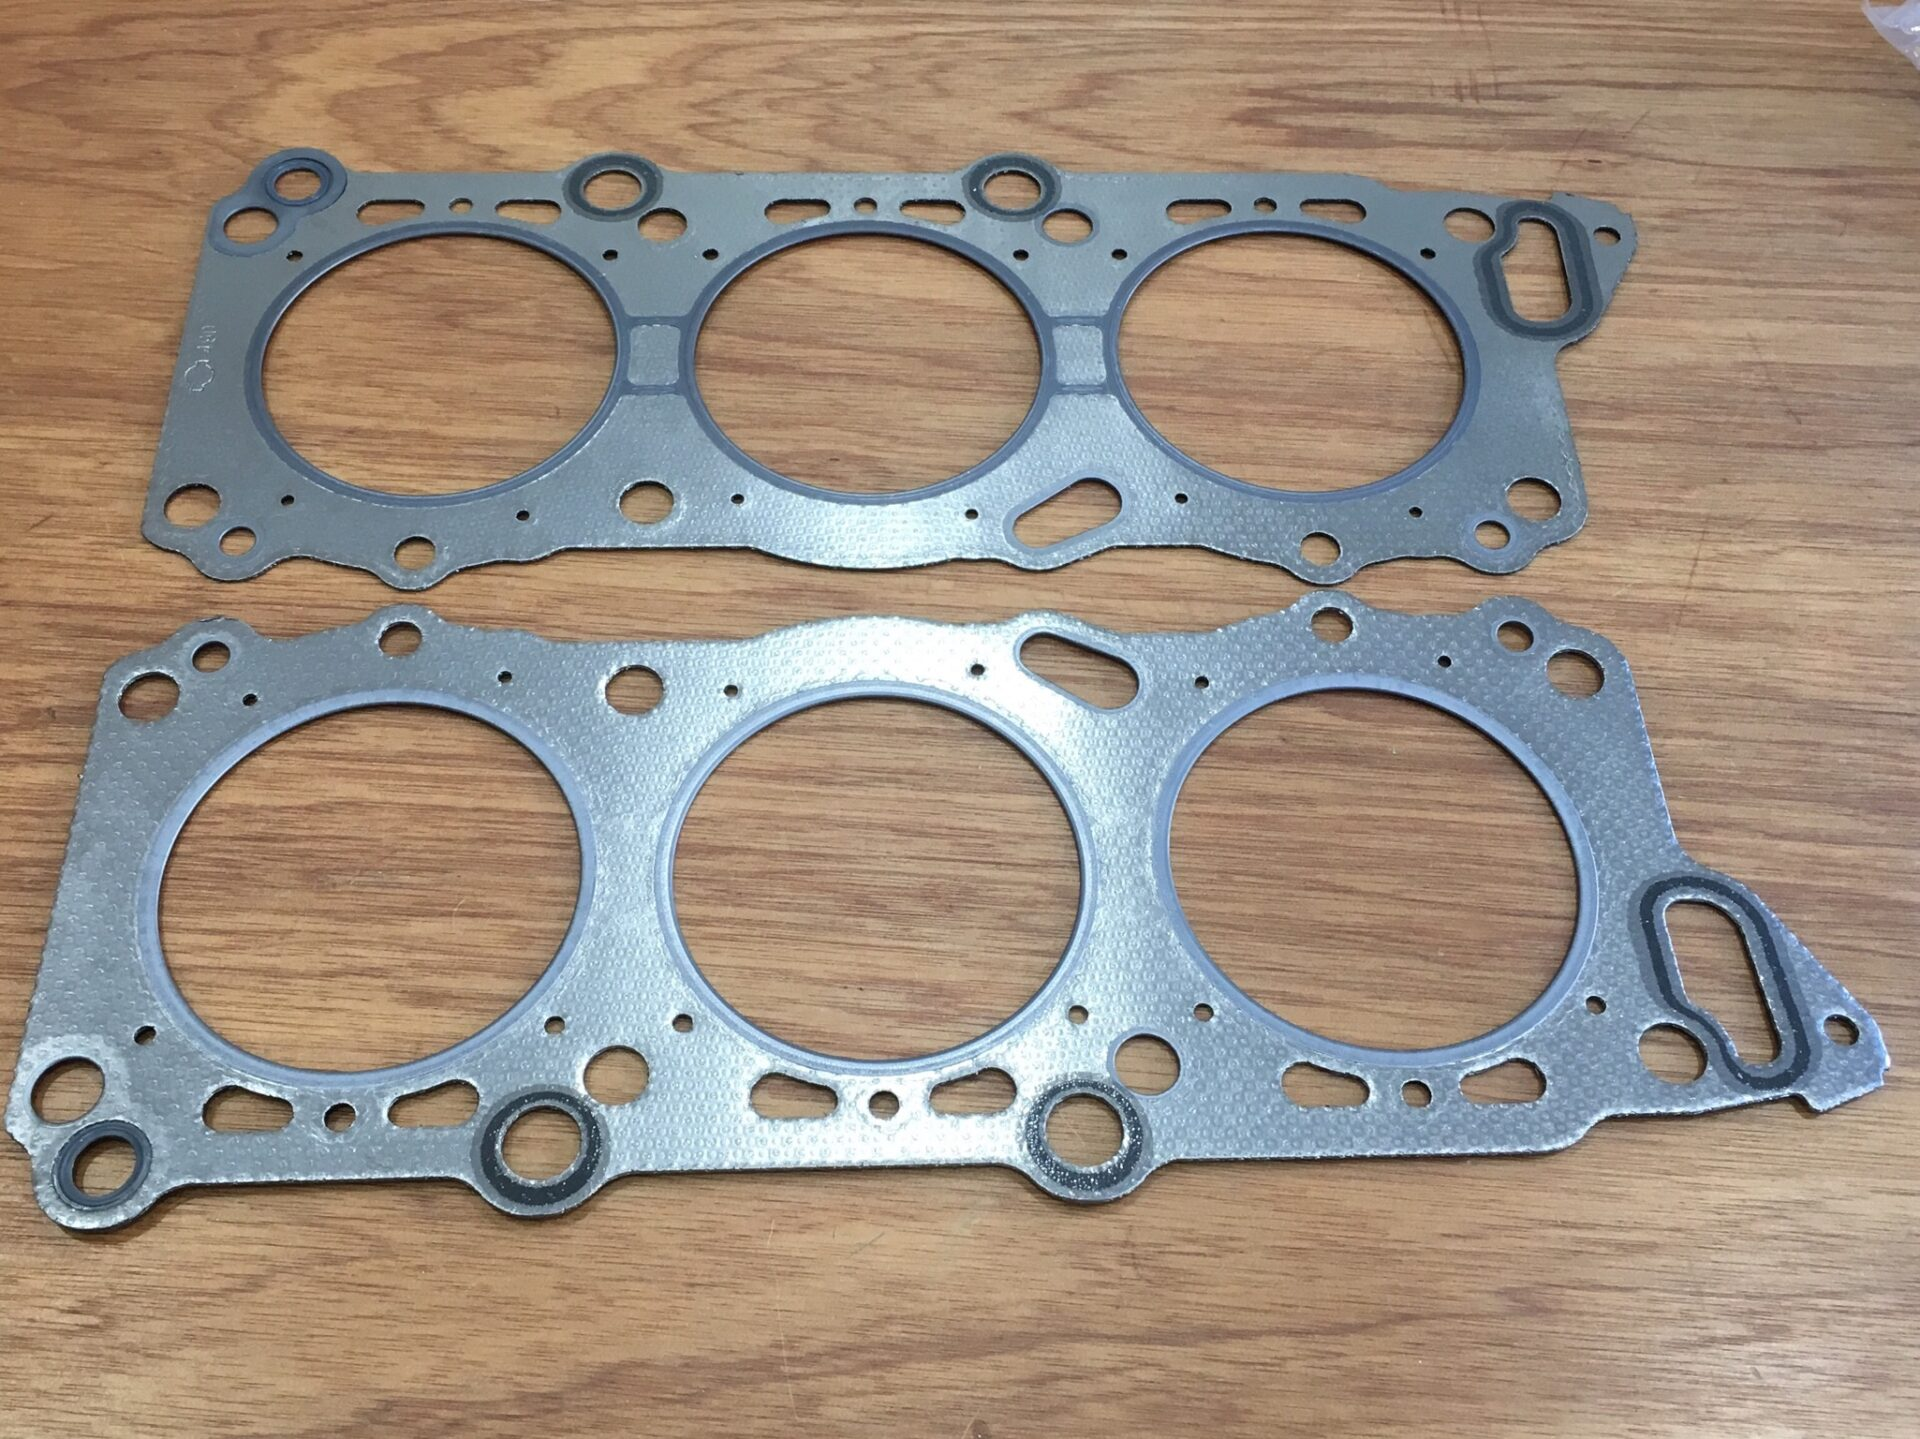 Rgs Engine Rebuild Gasket Kit For Nissan Z32 300zx Twin Turbo Or Na Z31 Wiring Harness Free Delivery 40000 Inc